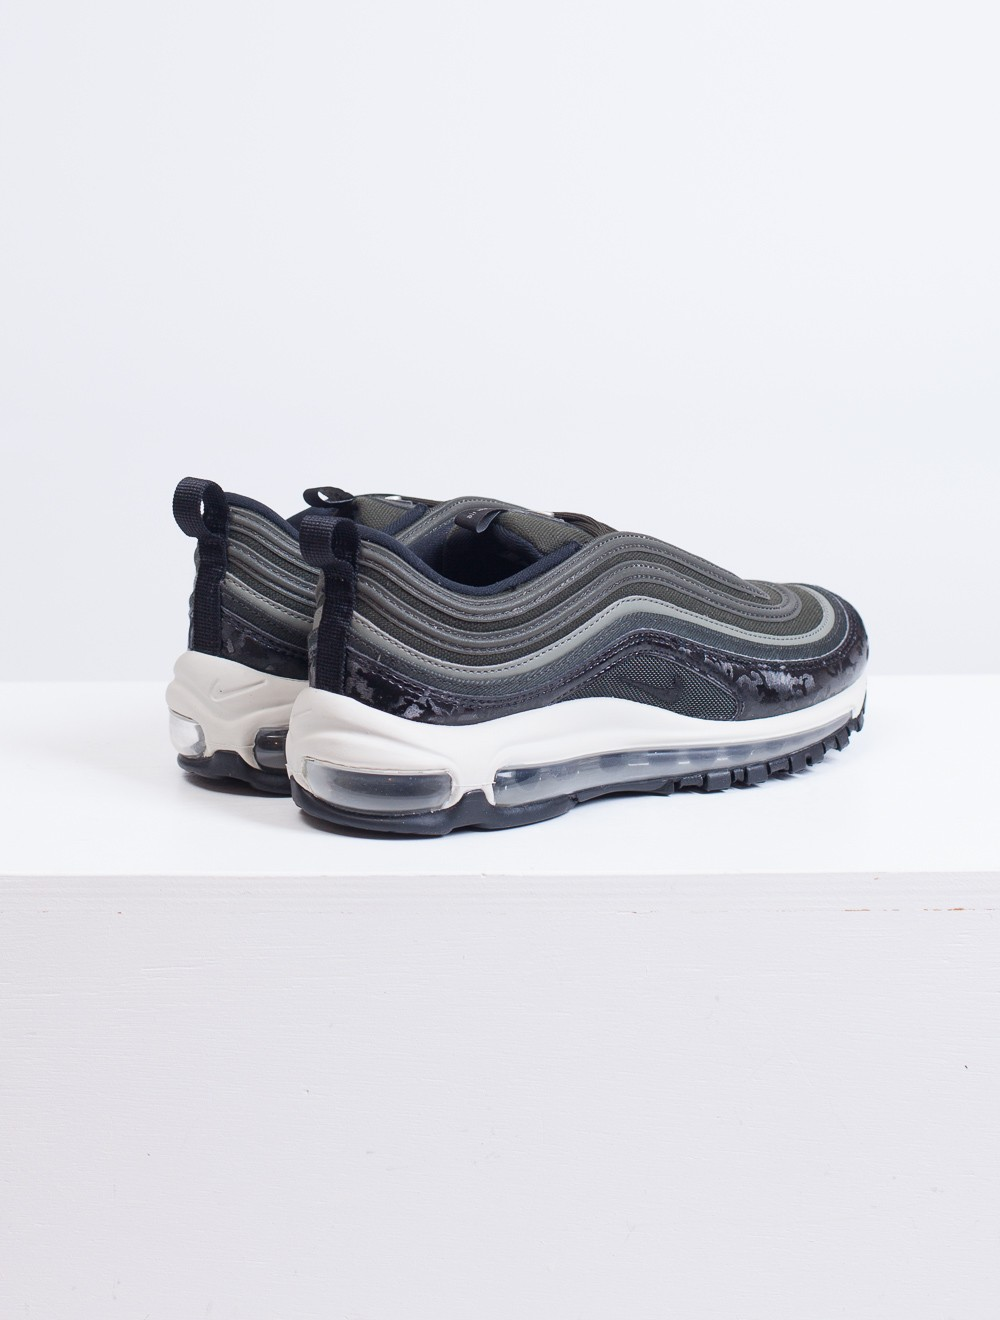 online store e5878 b68ed ... coupon for best price nike air max 97 prm 917646 grønn sneakers ab16a  517a4 626c7 15af9